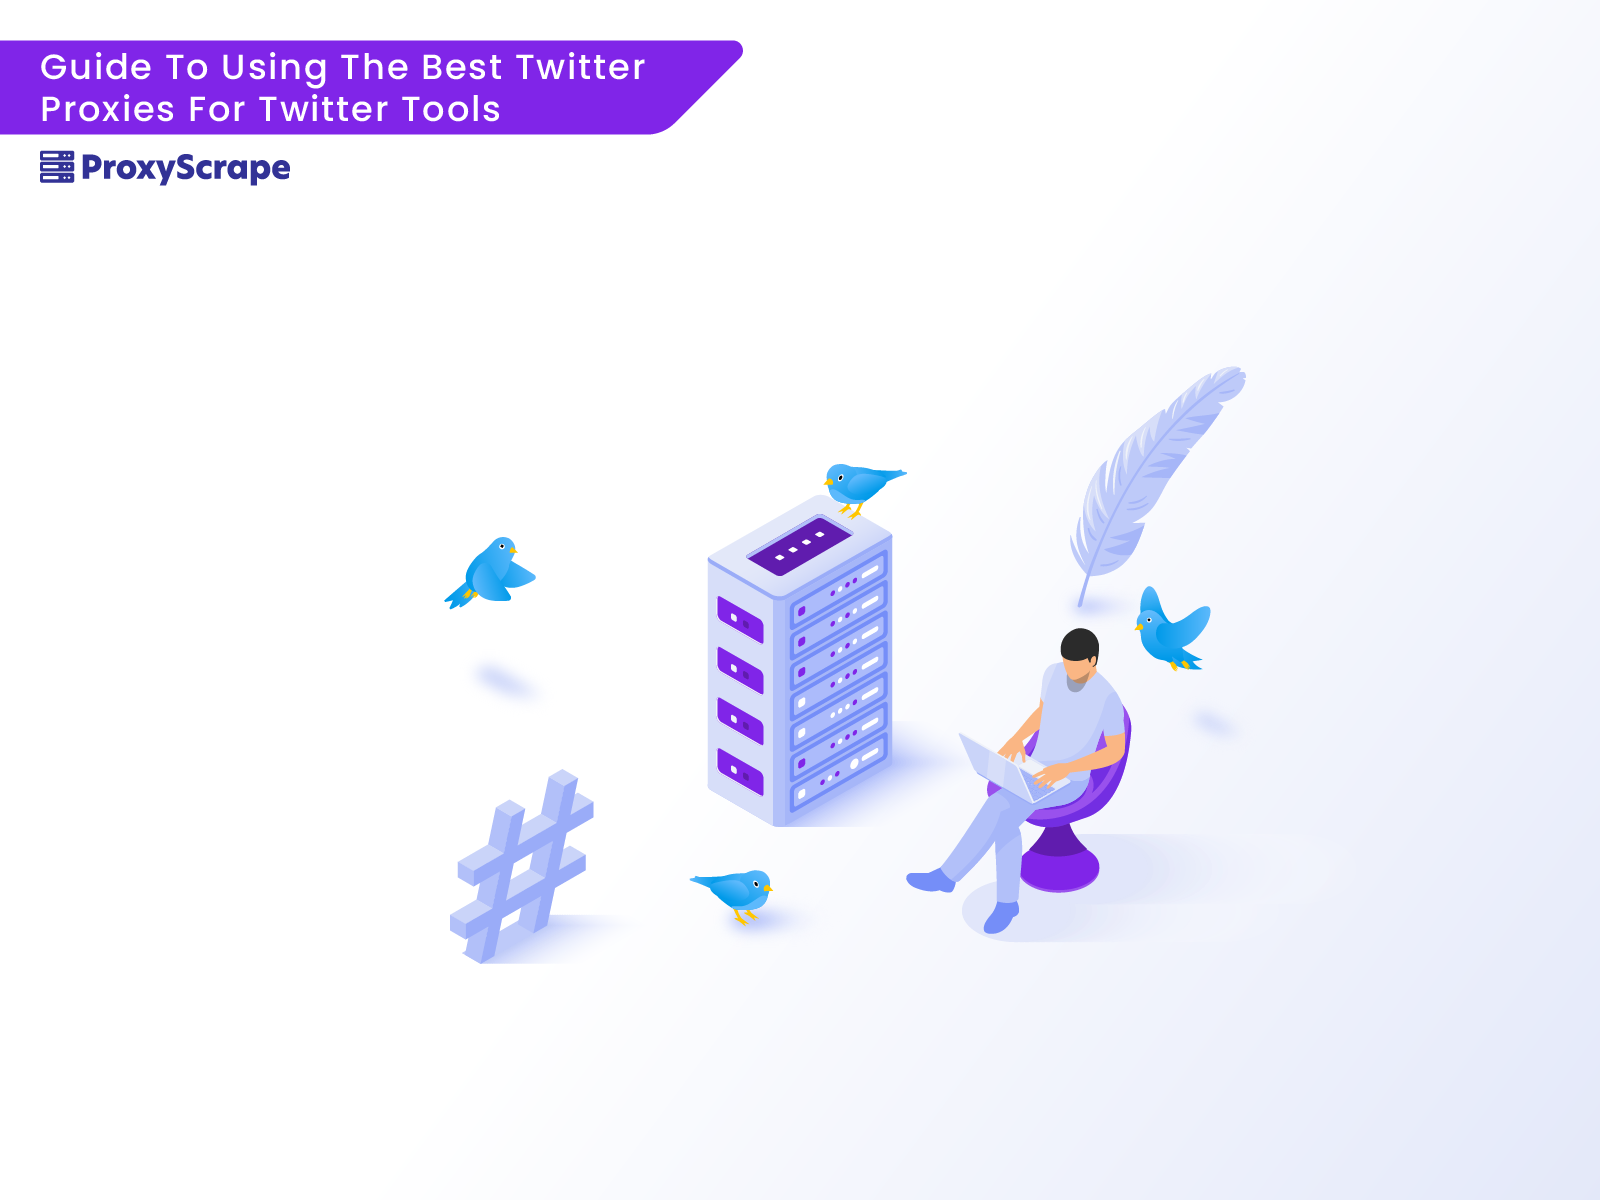 Guide To Using The Best Twitter Proxies For Twitter Tools